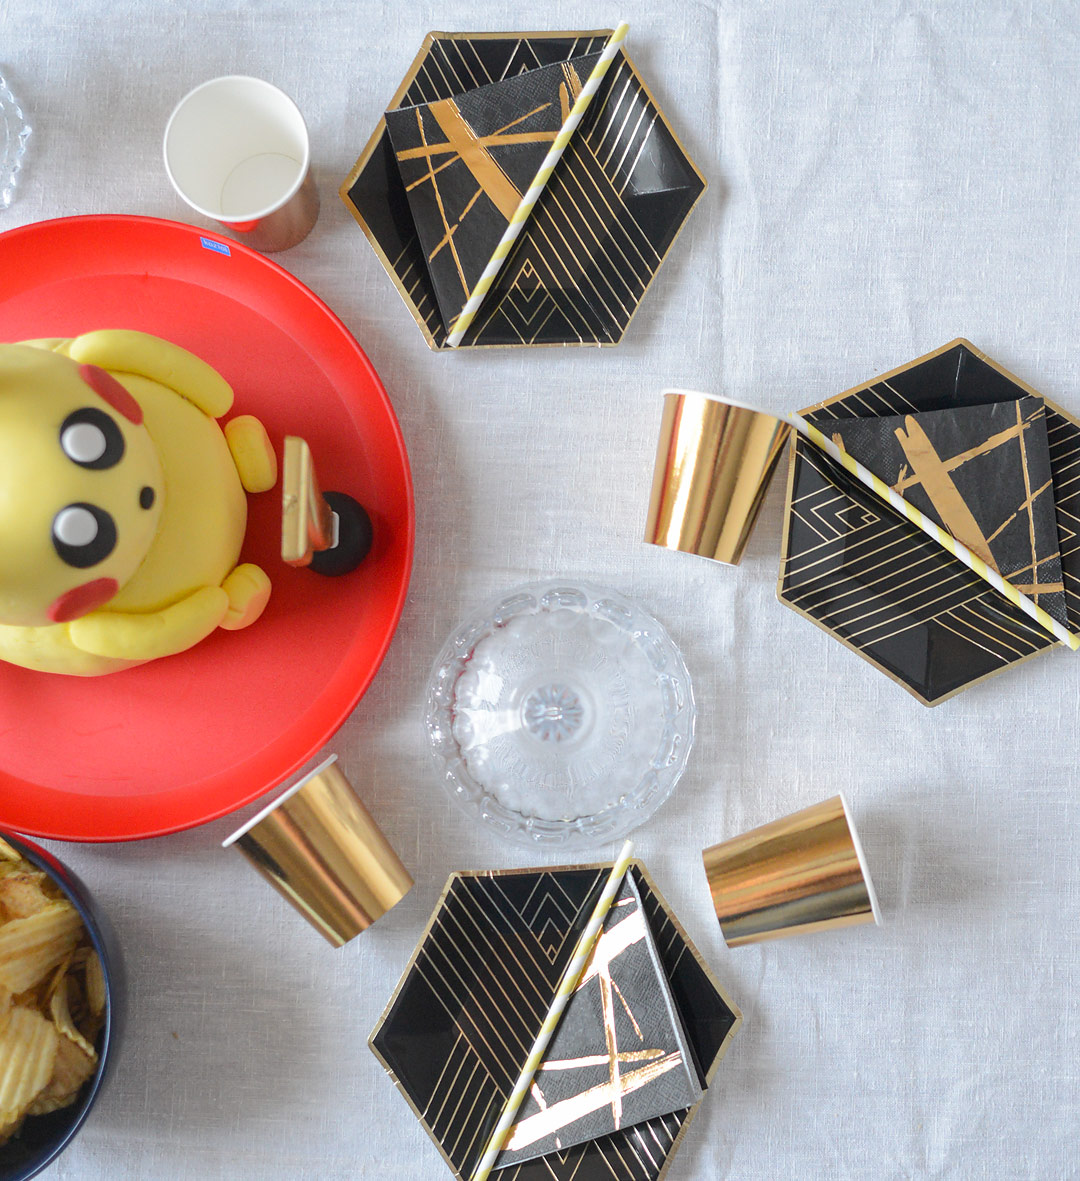 Pokemon birthday party with Pikachu cake and black & gold tableware